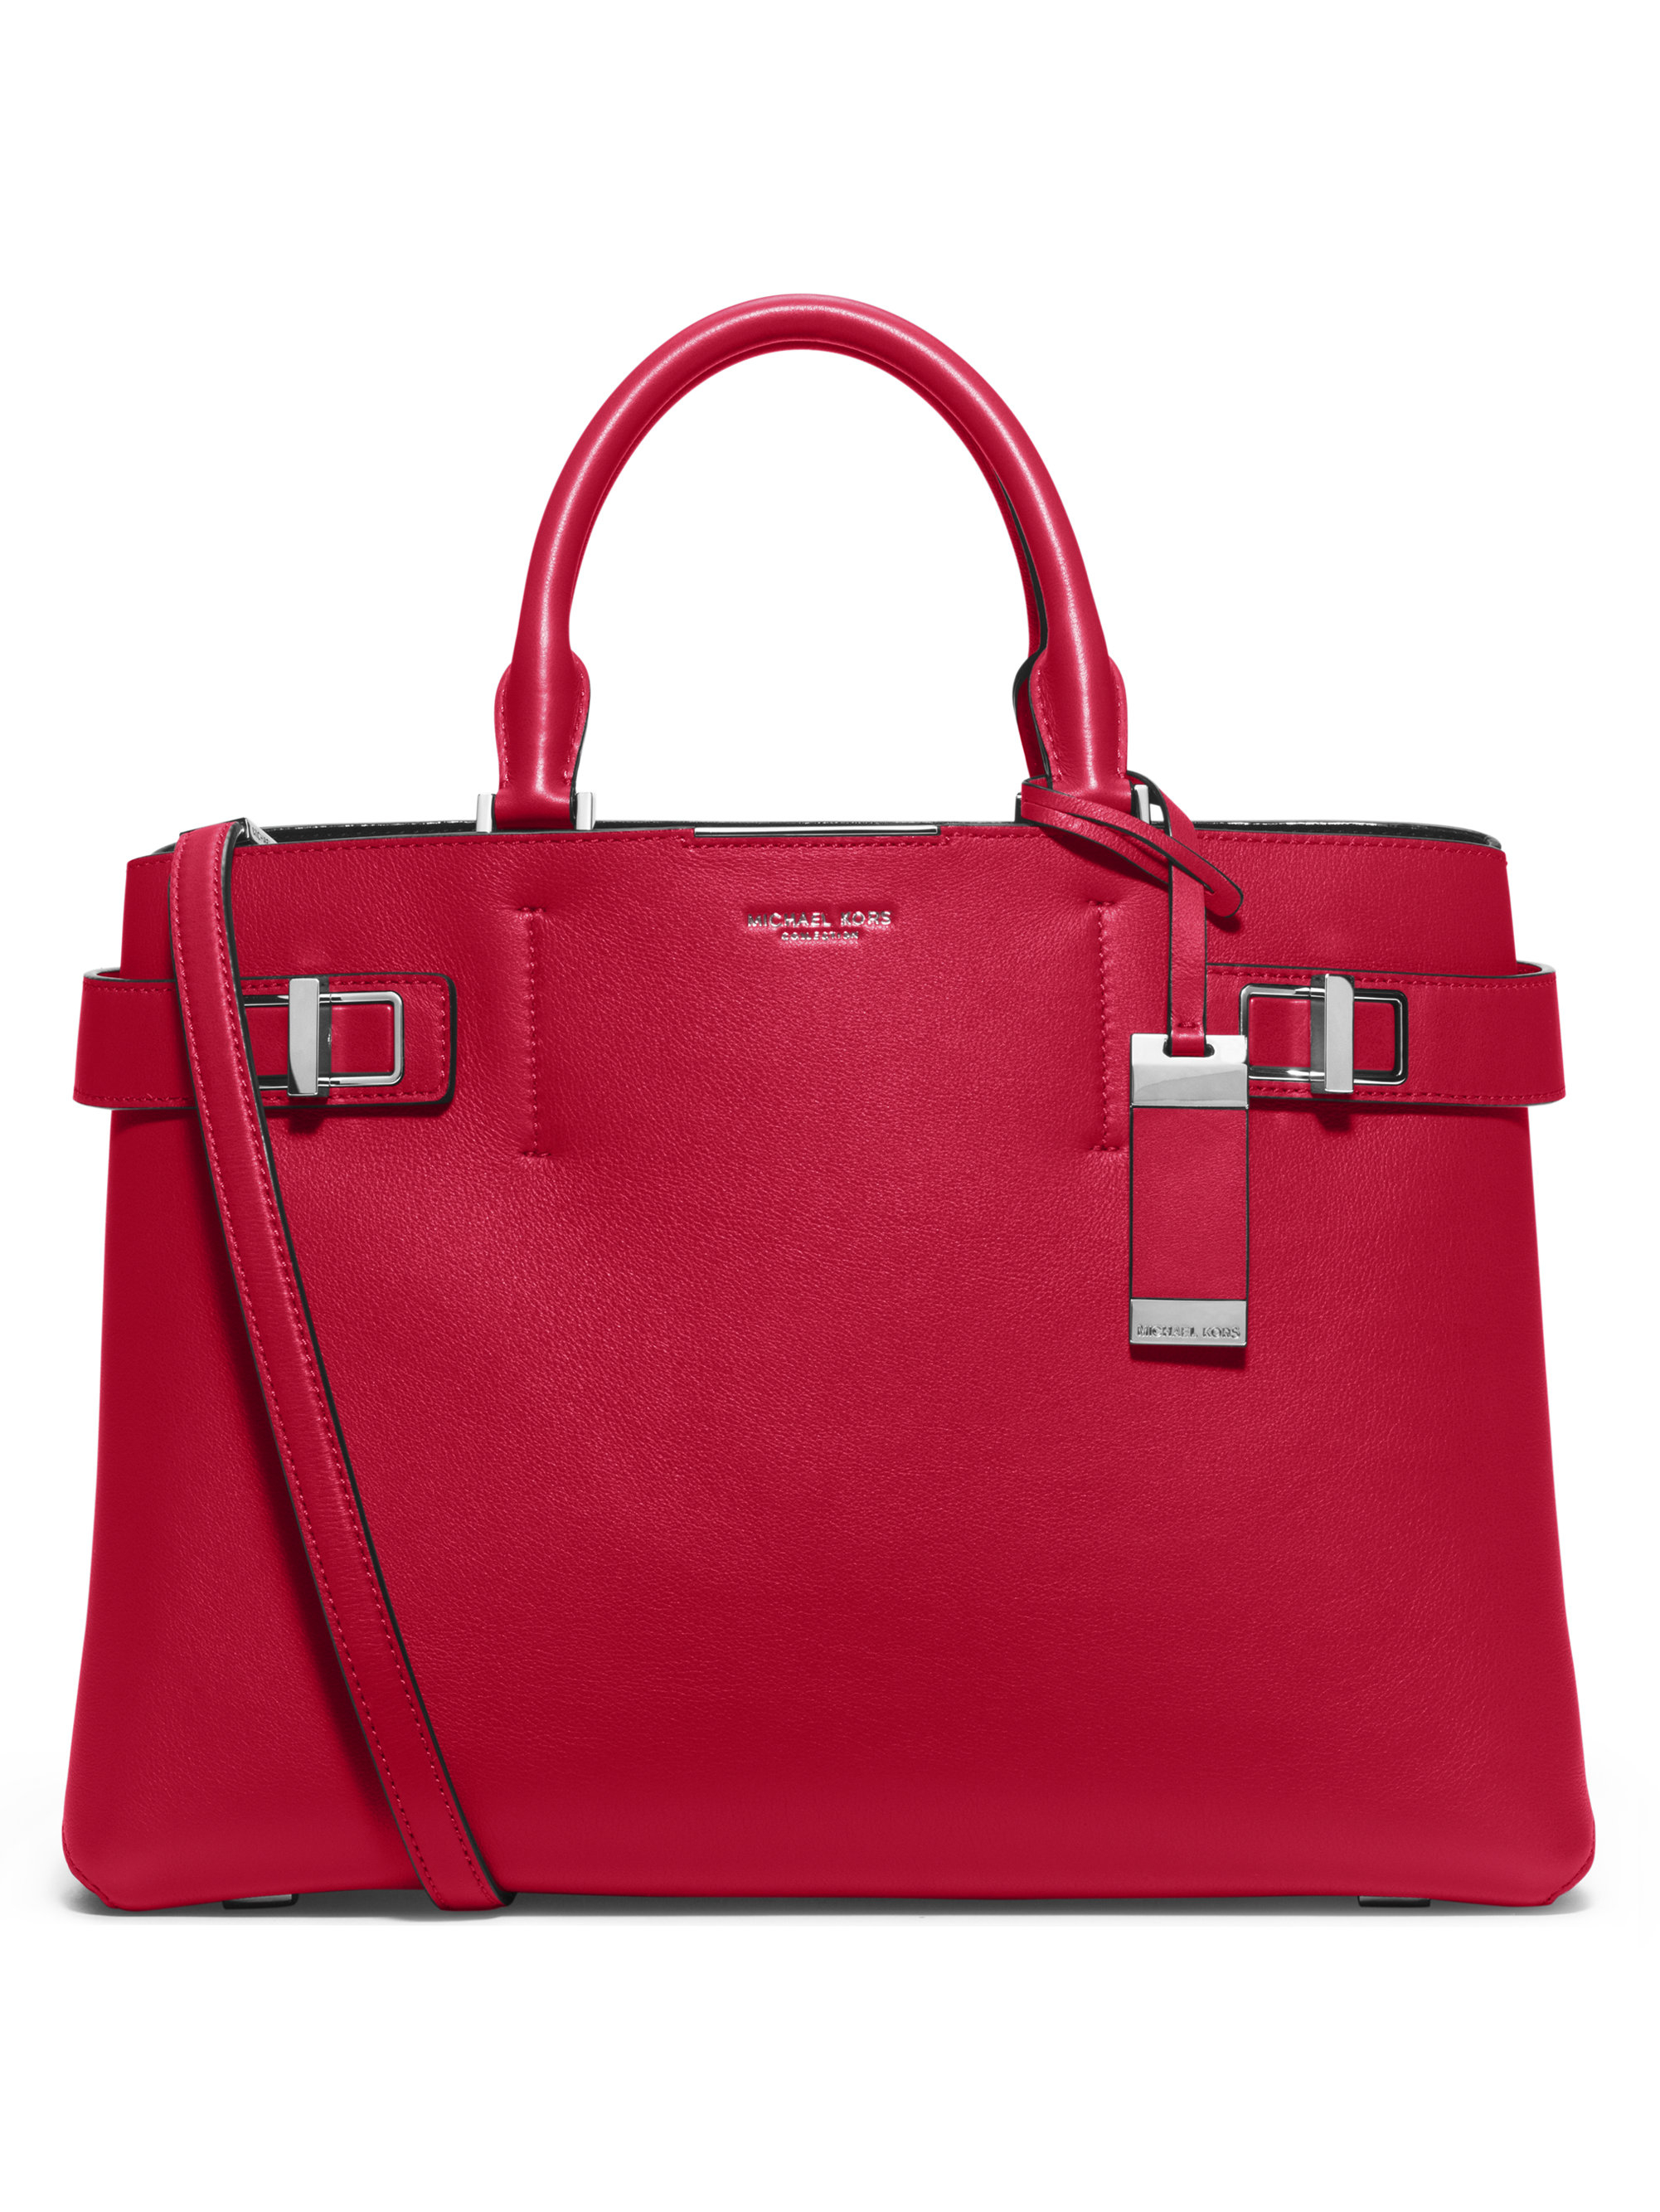 a2e697ac0bb3 Lyst - Michael Kors Bette Medium Leather Satchel in Red